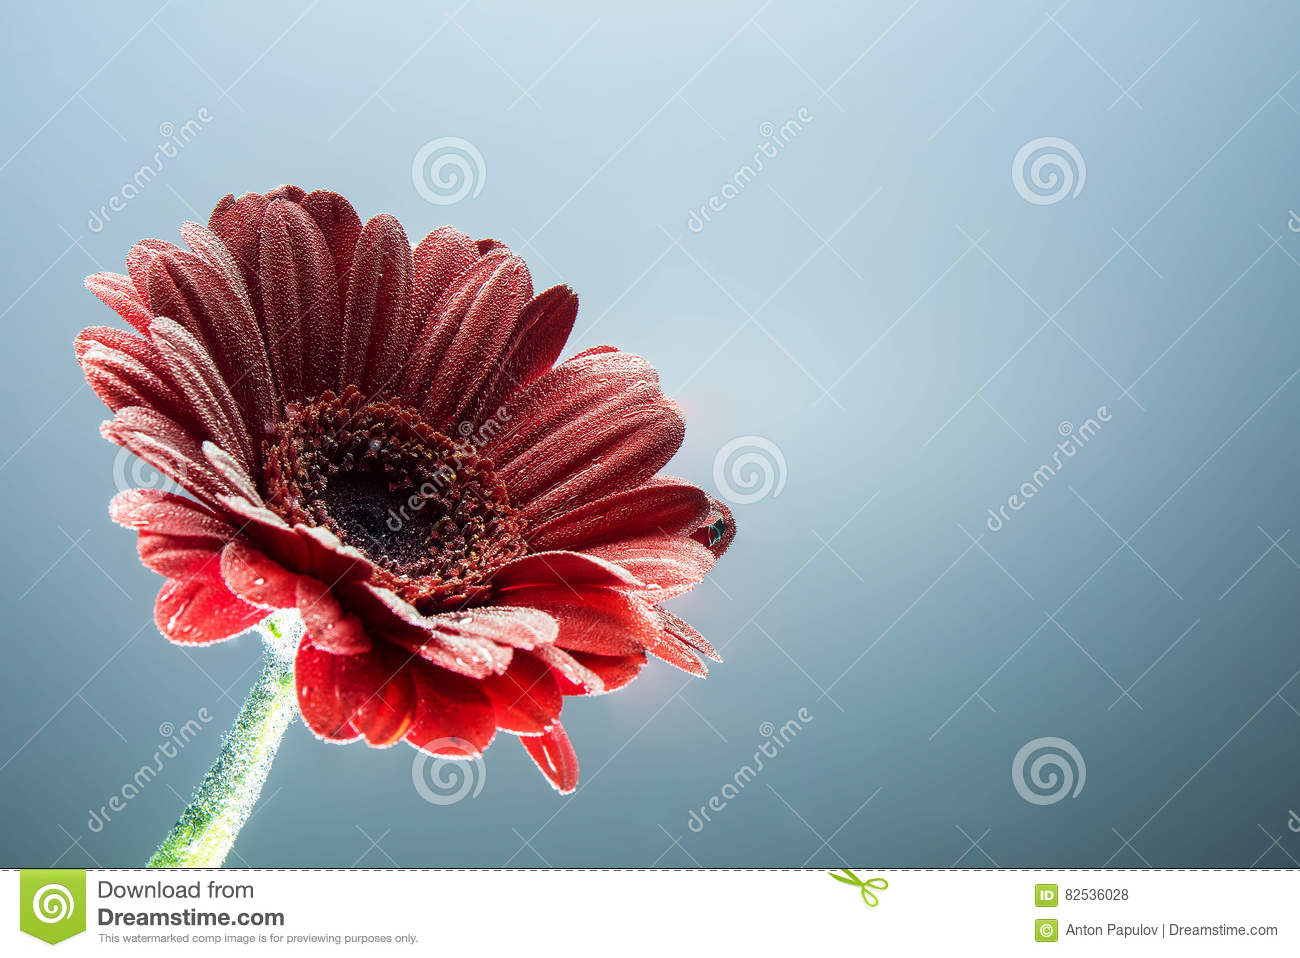 Postcard red gerbera flower closeup with water drops. soft grey background